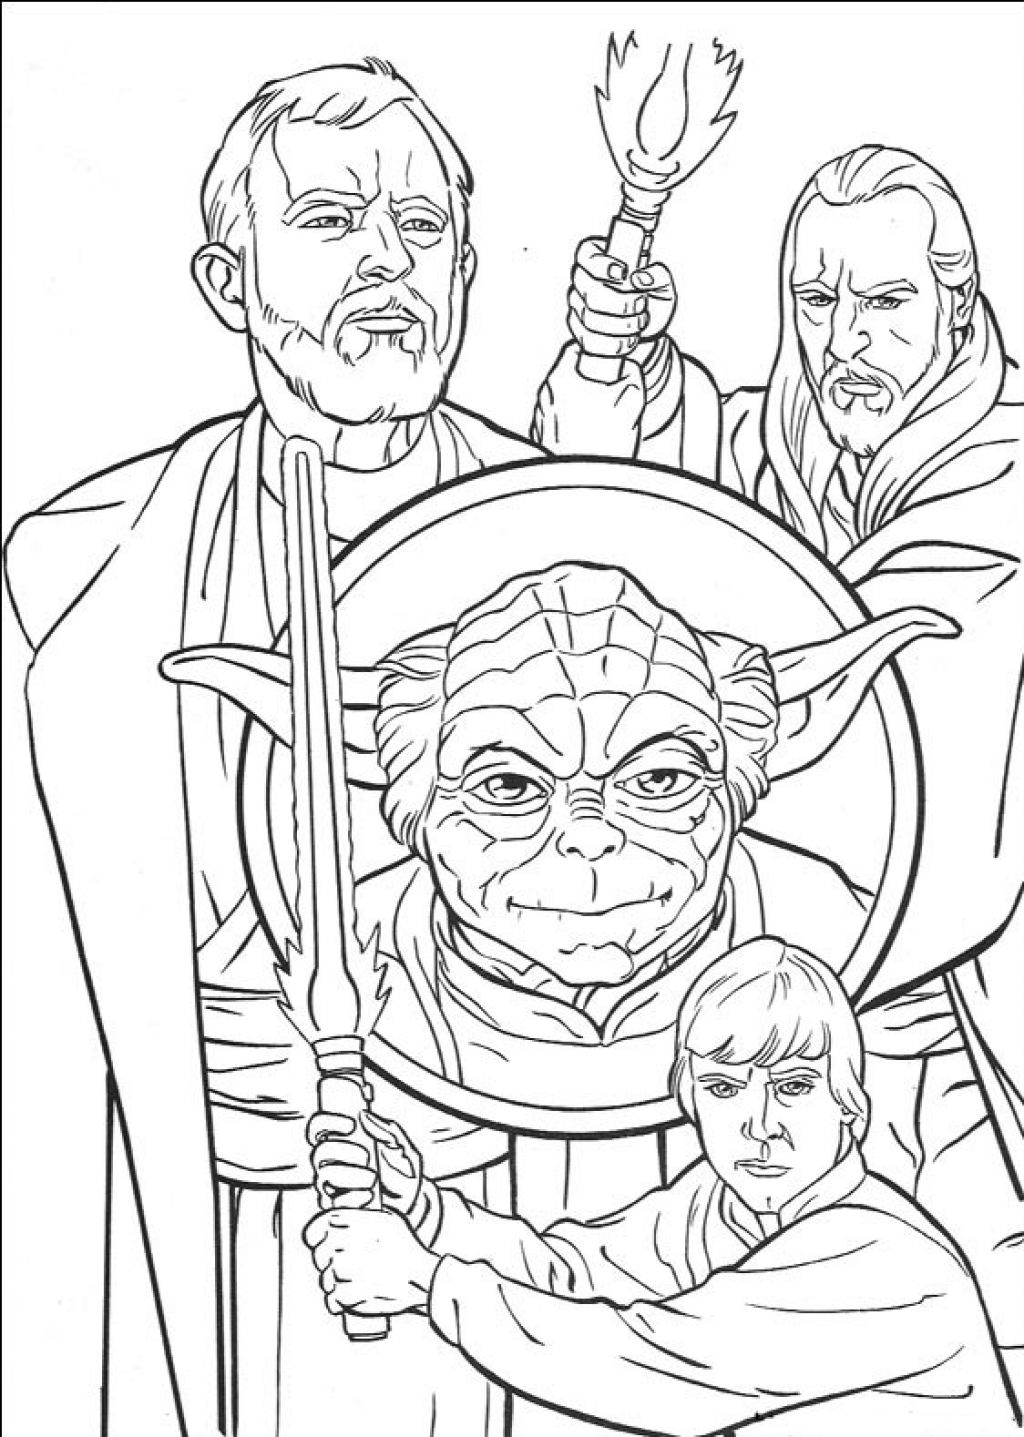 Coloring Pages Star Wars Free Printable Download Of New Coloring Pages Star Wars Printable